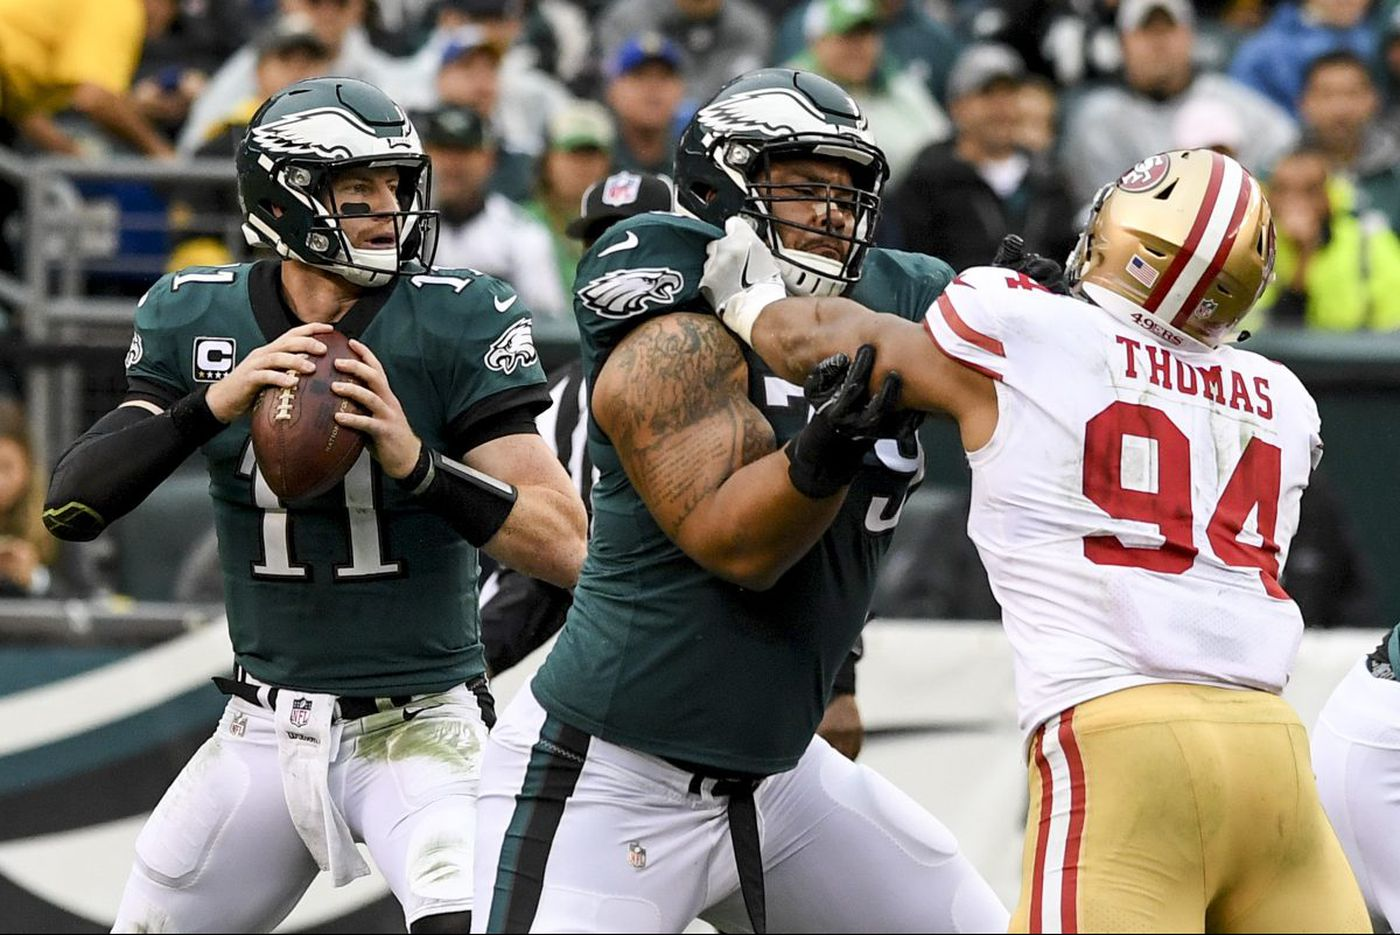 If Eagles don't sort out pass protection better, season could change in a snap